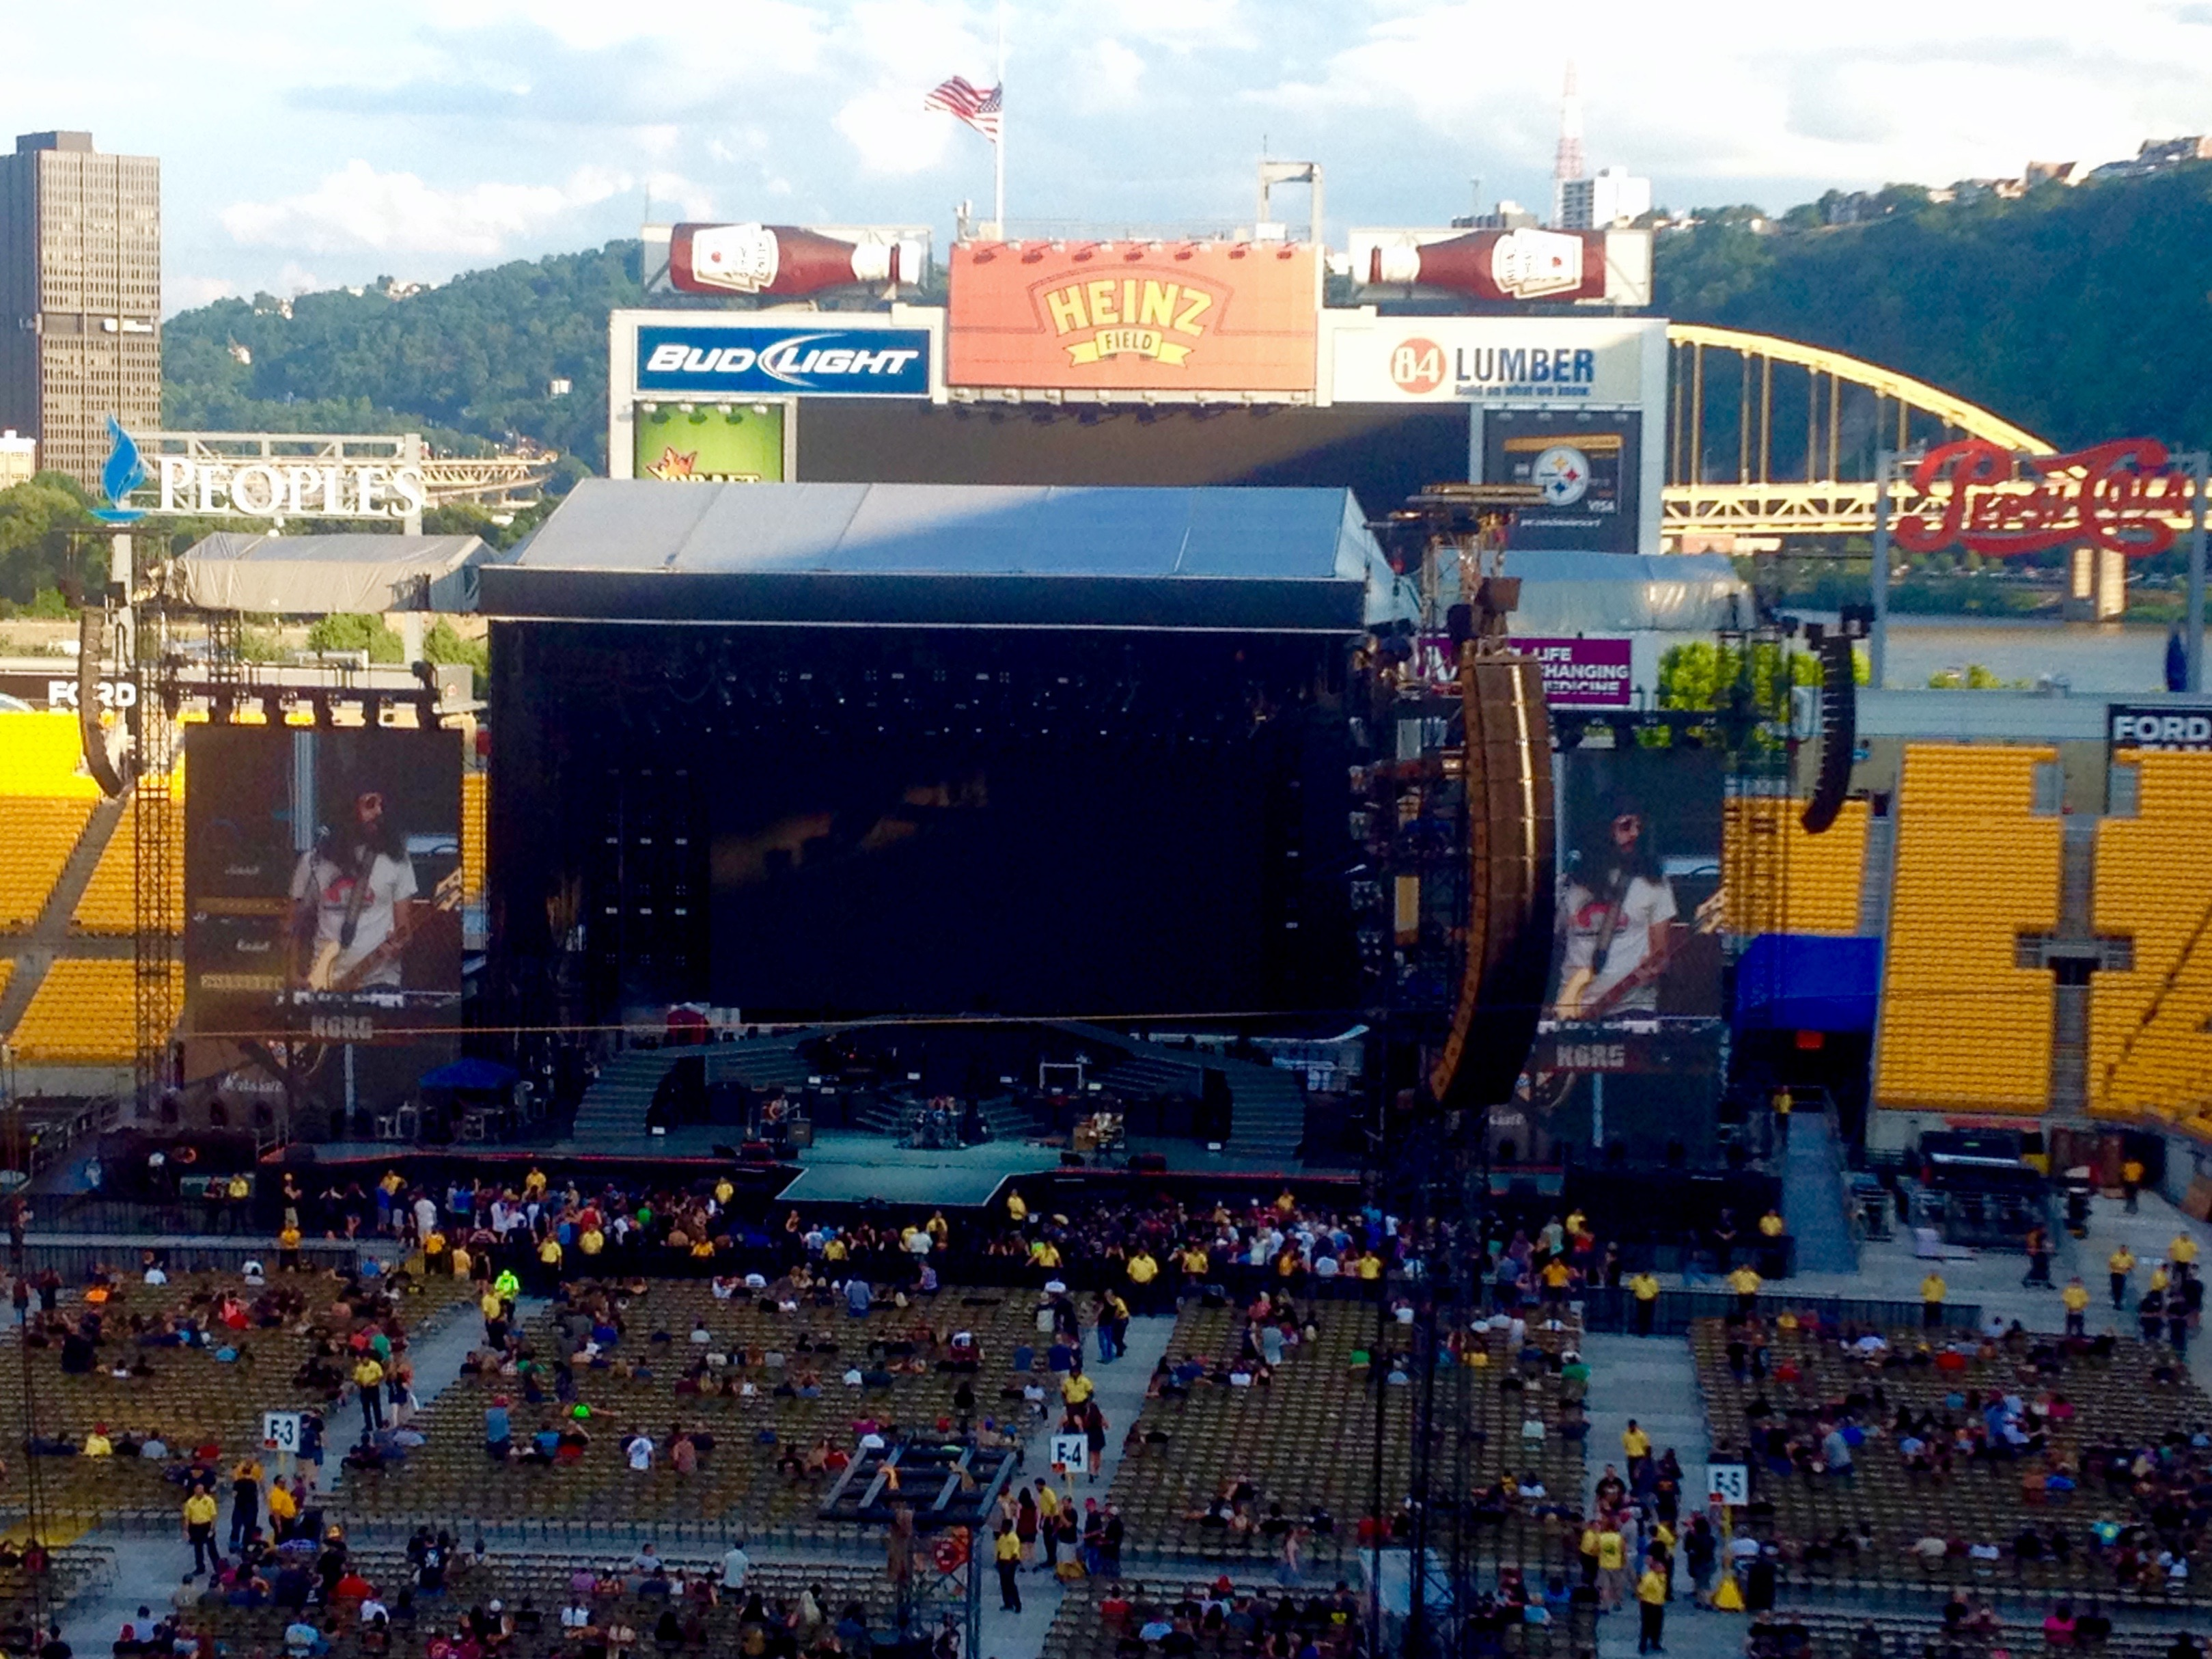 Wolfmother @ Heinz Field in Pittsburgh